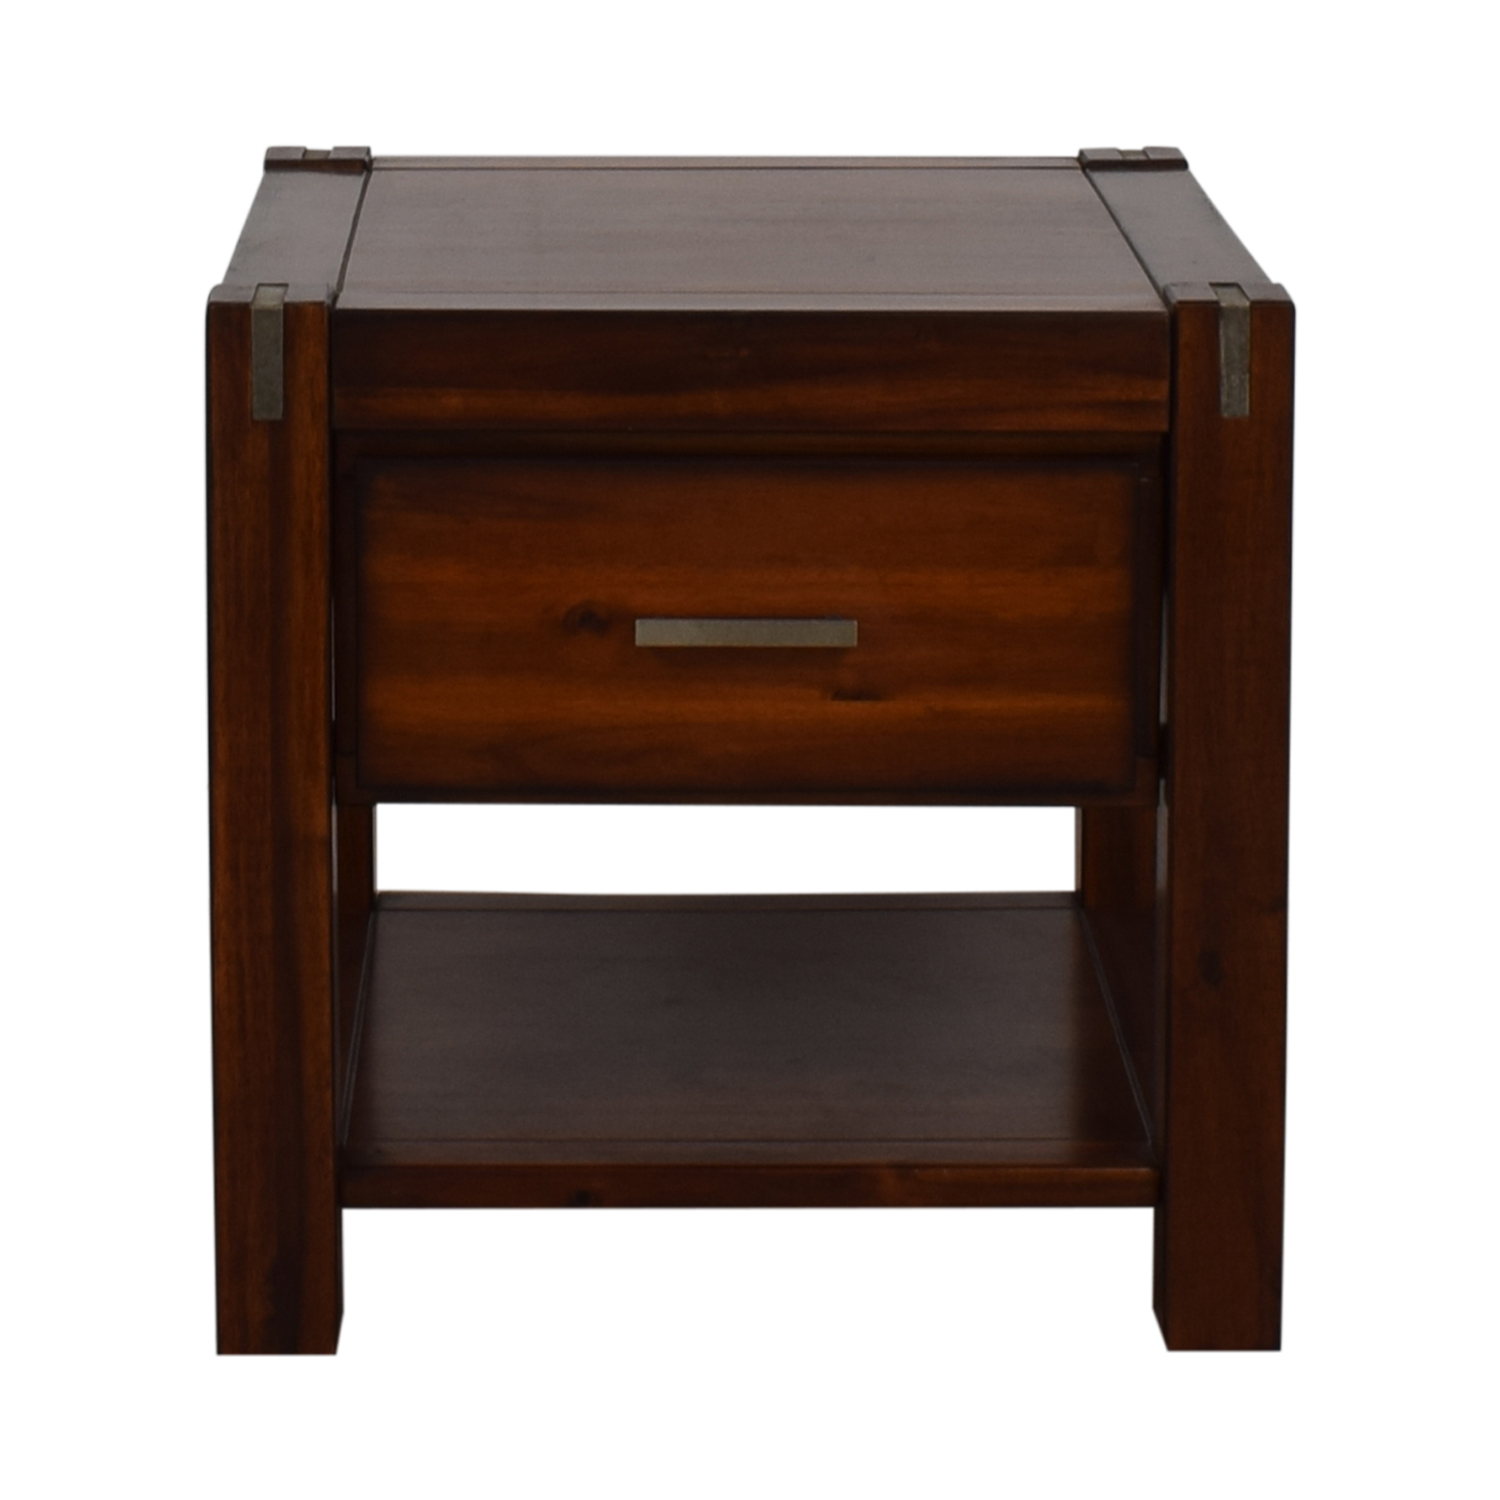 Jofran Furniture Jofran Furniture Wood Single-Drawer End Table brown